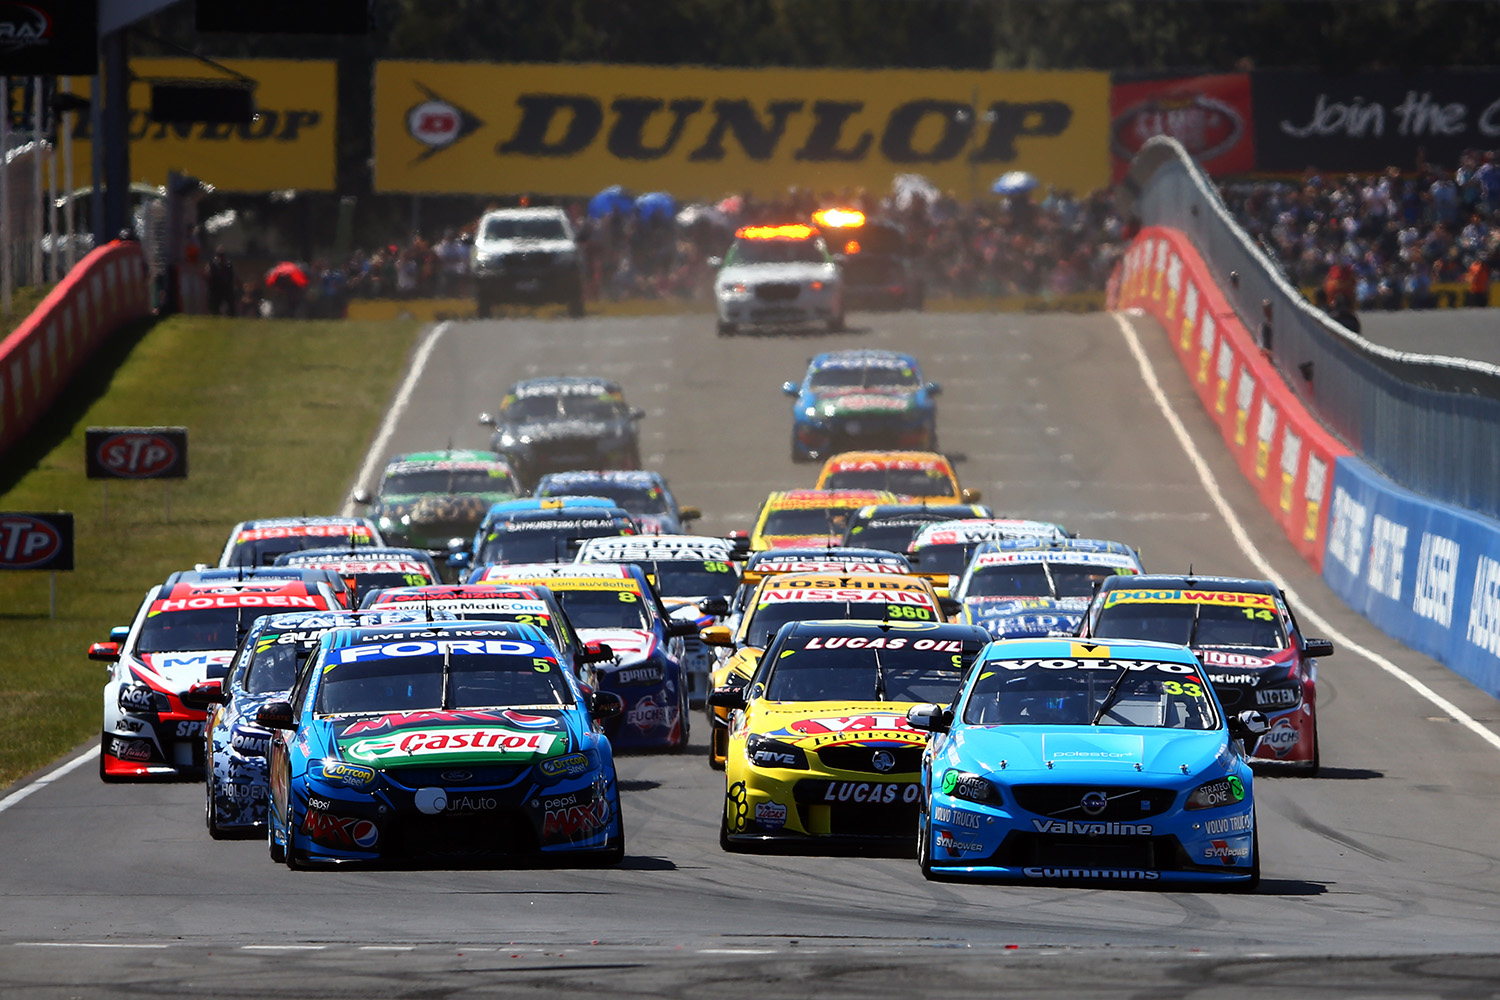 Bathurst 1000 High Quality Background on Wallpapers Vista